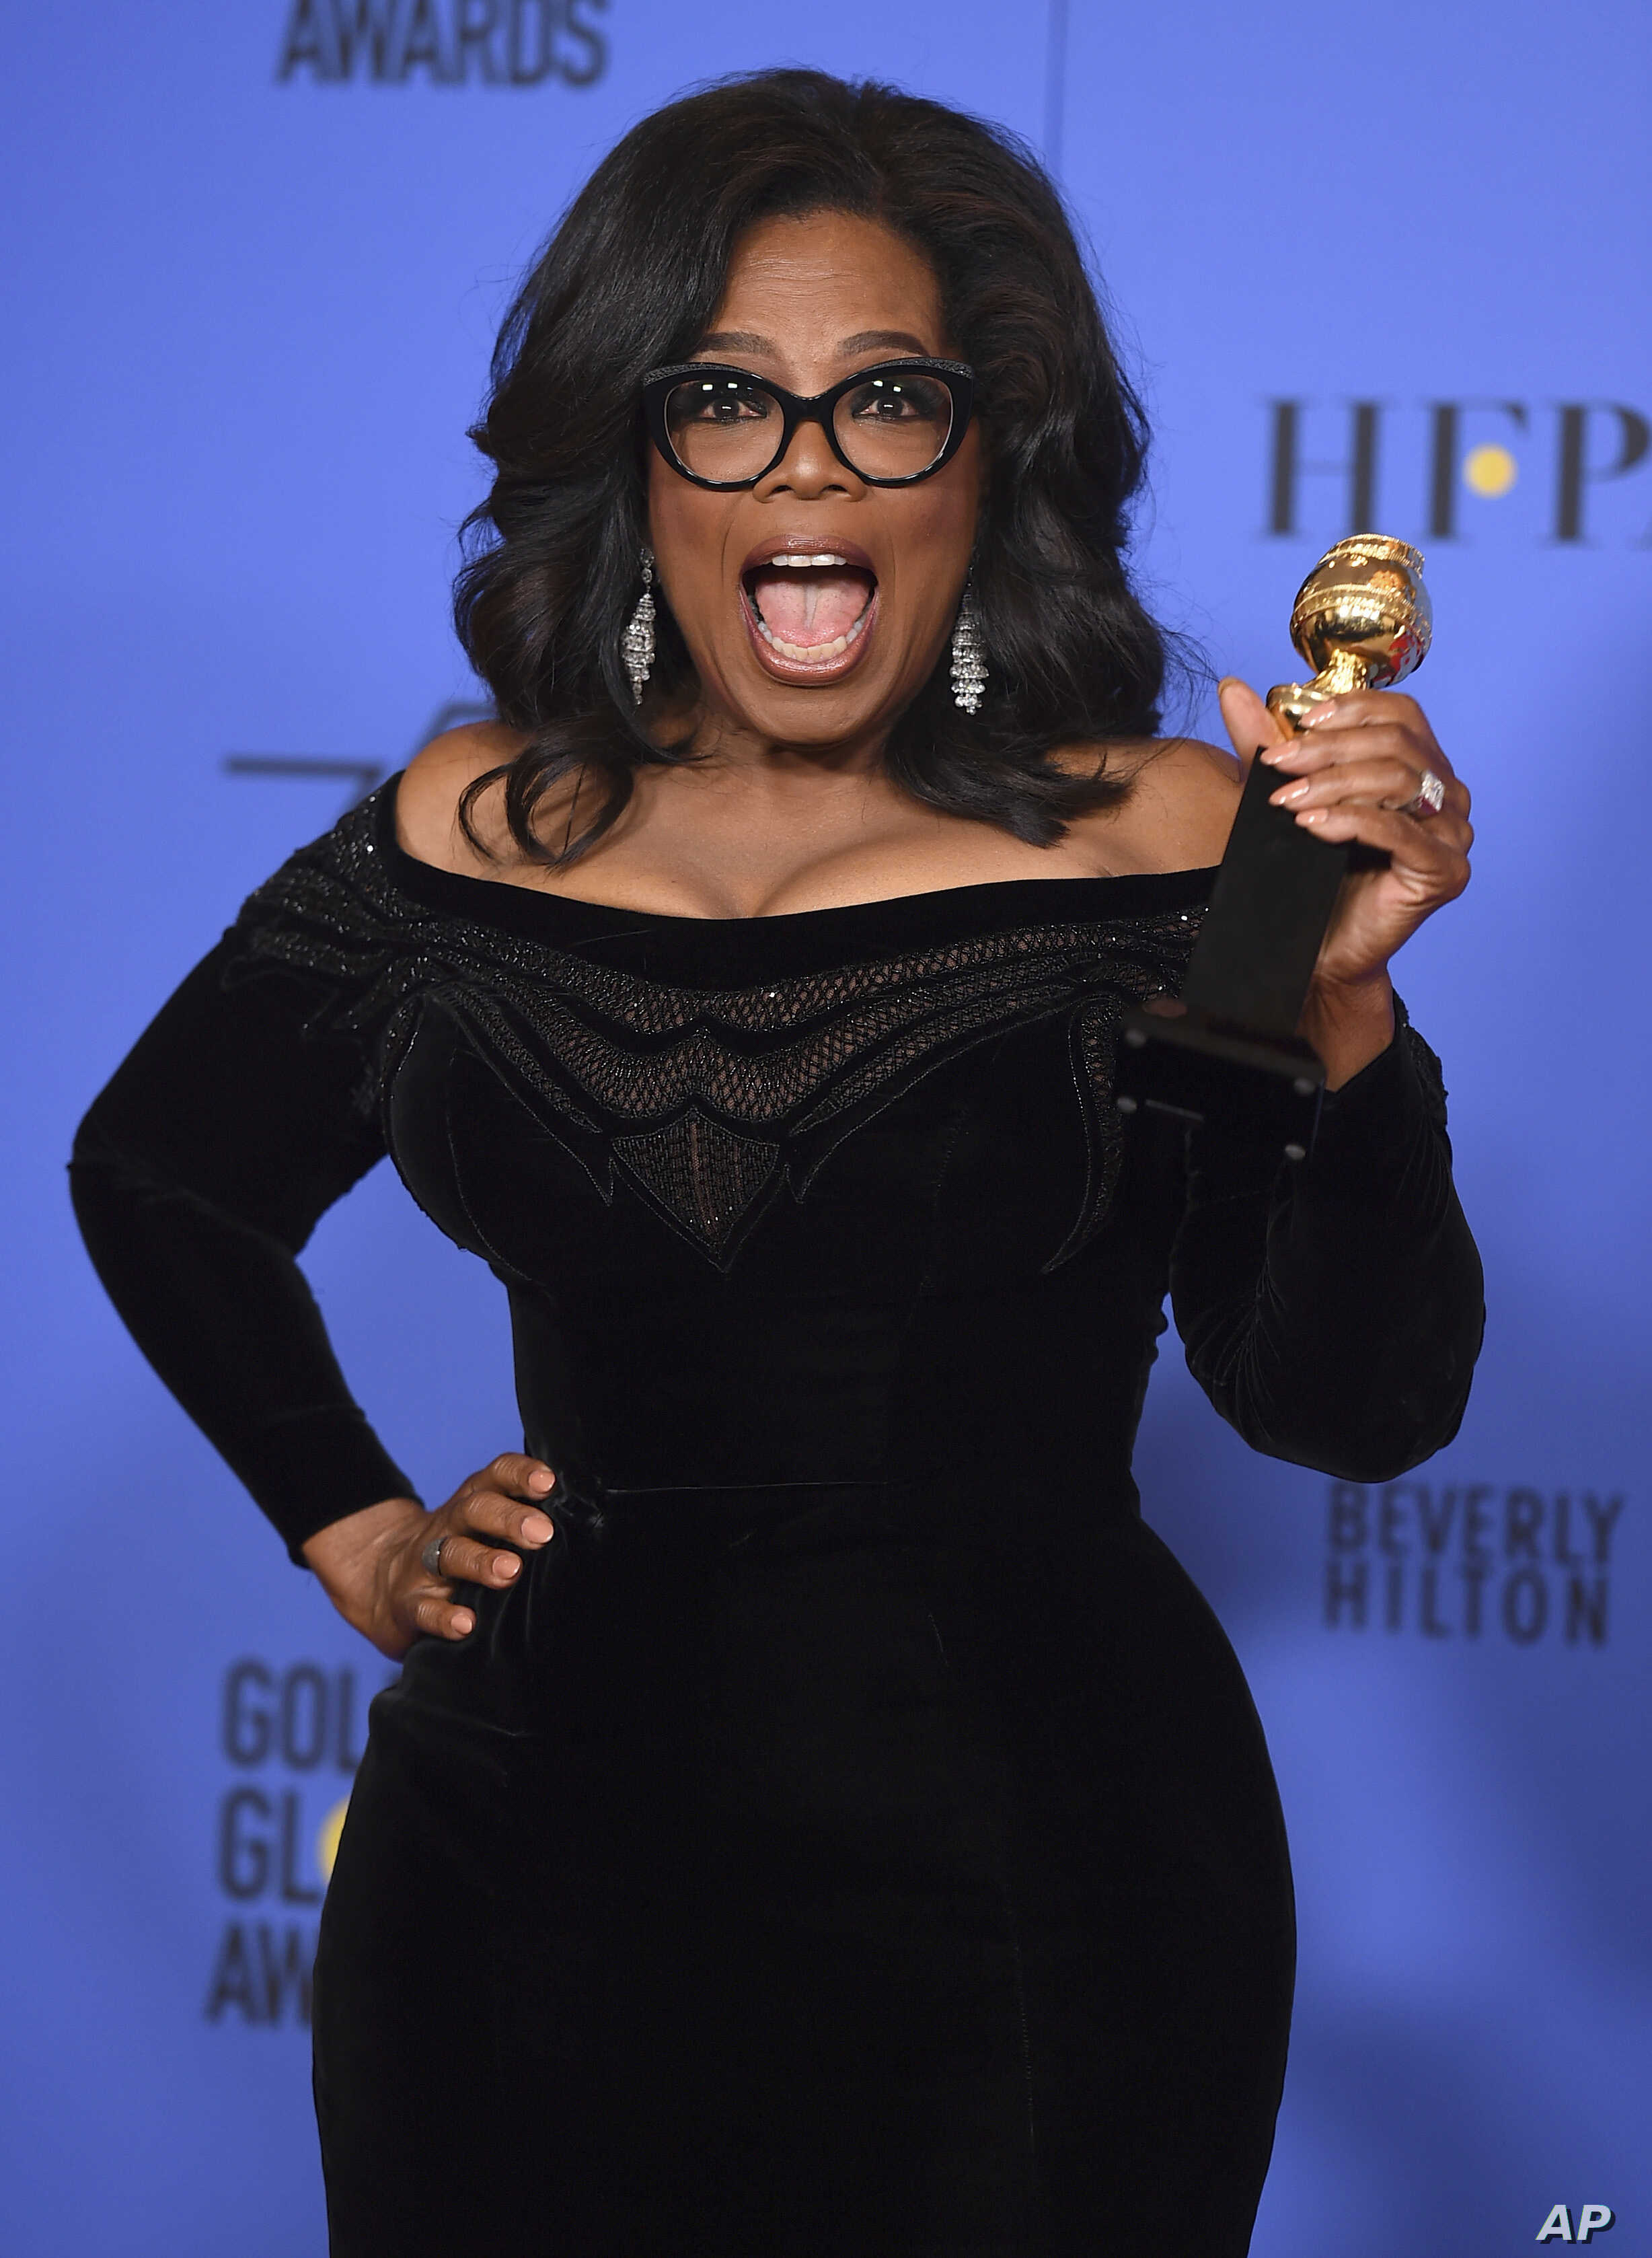 Most Americans 'Don't Want' Oprah to Run for President | Voice of ...